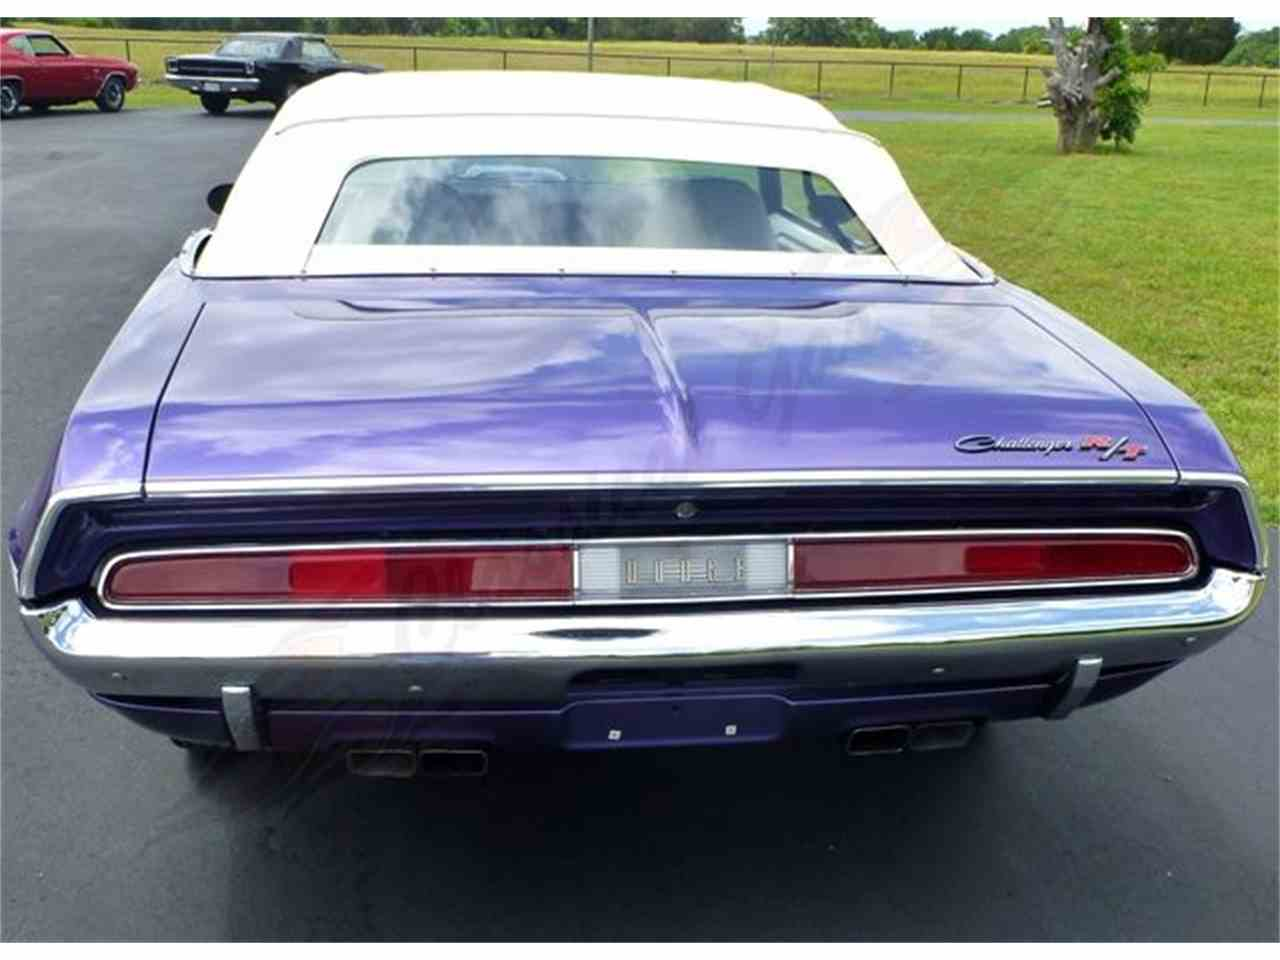 Large Picture of '70 CHALLENGER CONVERTIBLE R/T located in Texas Offered by Classical Gas Enterprises - BVHV